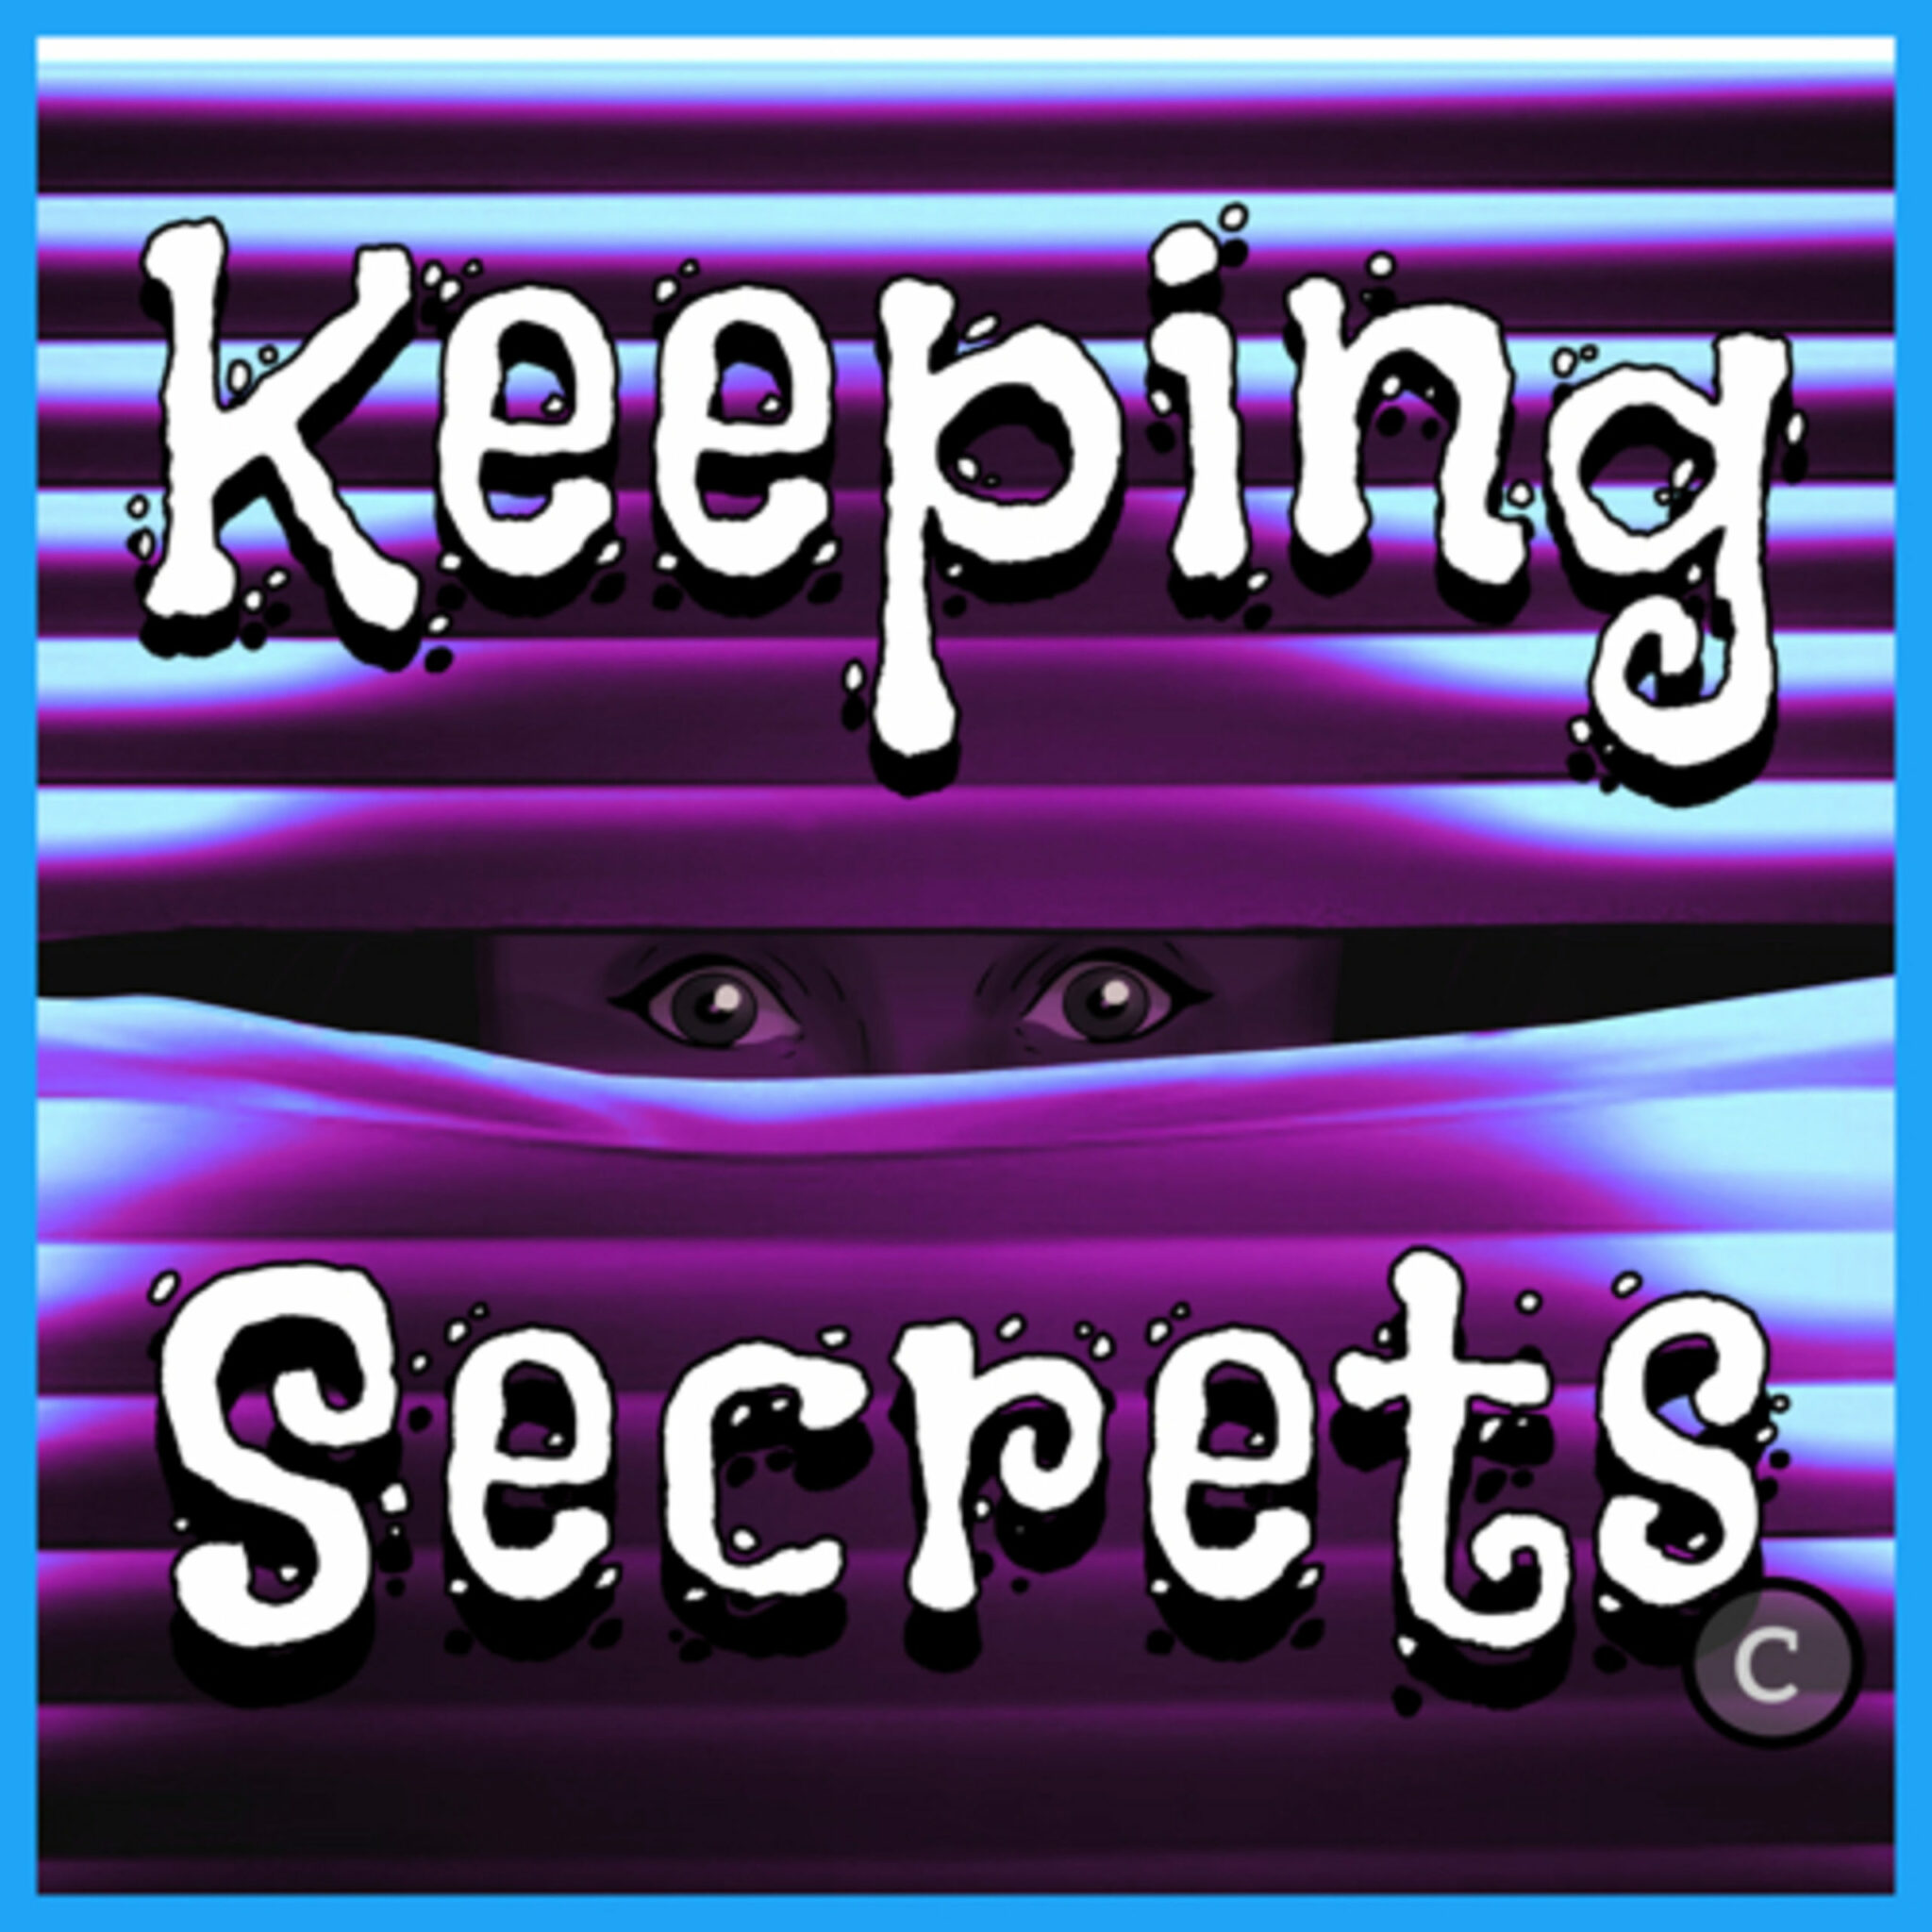 Welcome to a new segment we're testing out, The Secret Six! A collection of short swinger stories gathered over the past 10 years of wild times. In this first of hopefully many, we reminisce about 6 hot tub experiences that seemed to stand out from the rest. We thank you all for listening to our ramblings and love you all!                                You can find us on Twitter @keep1ngsecrets.                                              Or email us at keepingsecrets75@gmail.com